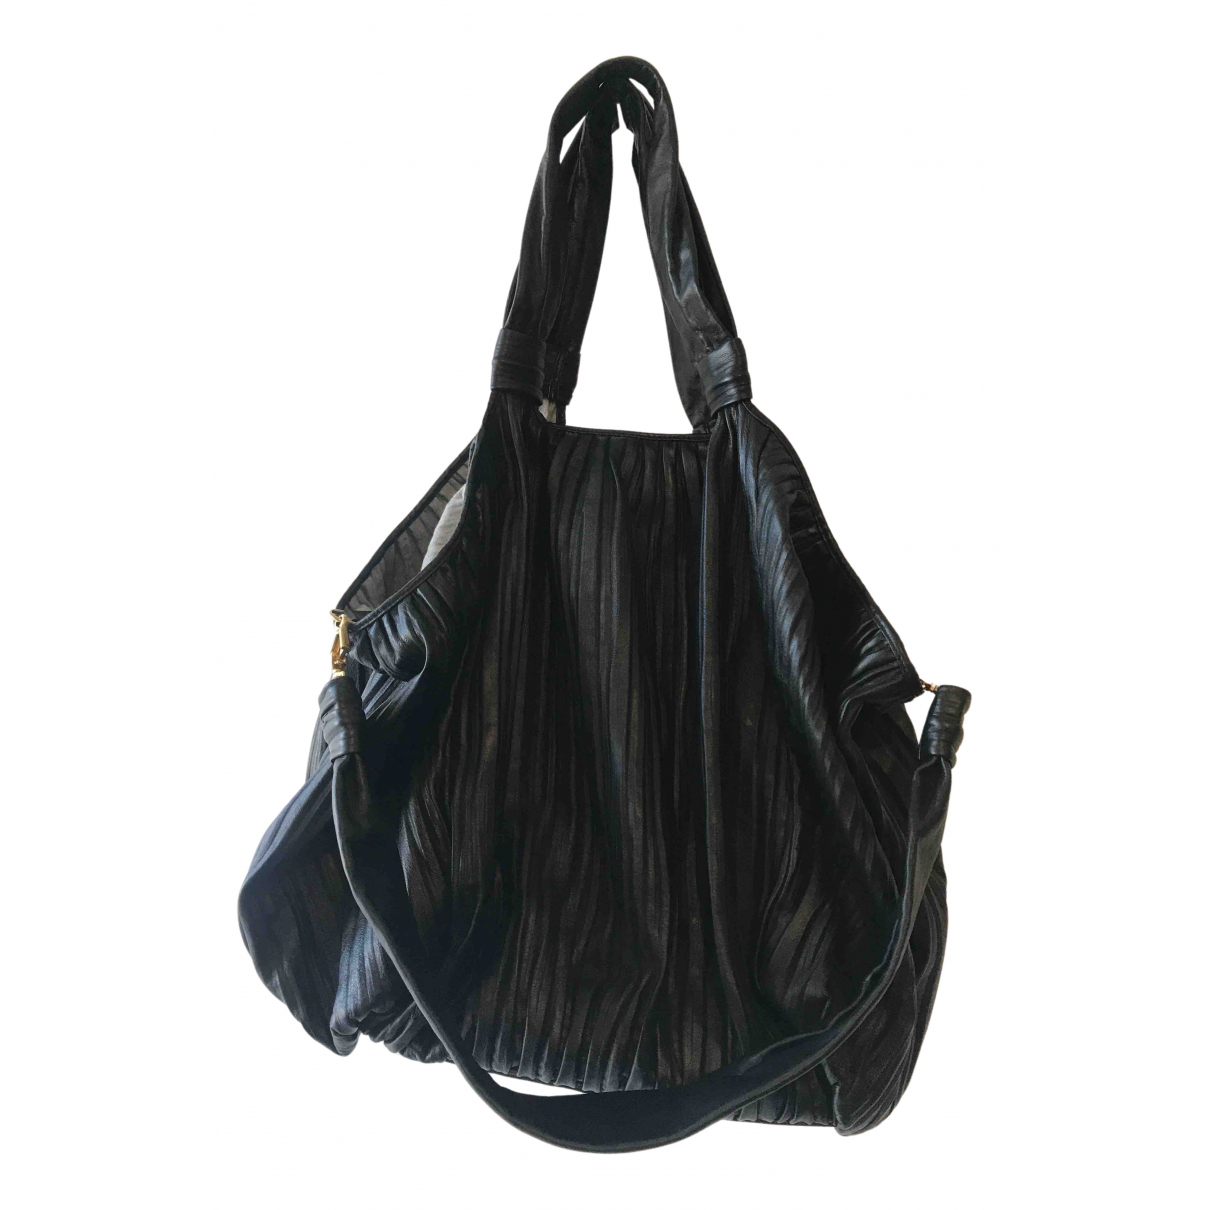 Max Mara N Black Leather handbag for Women N